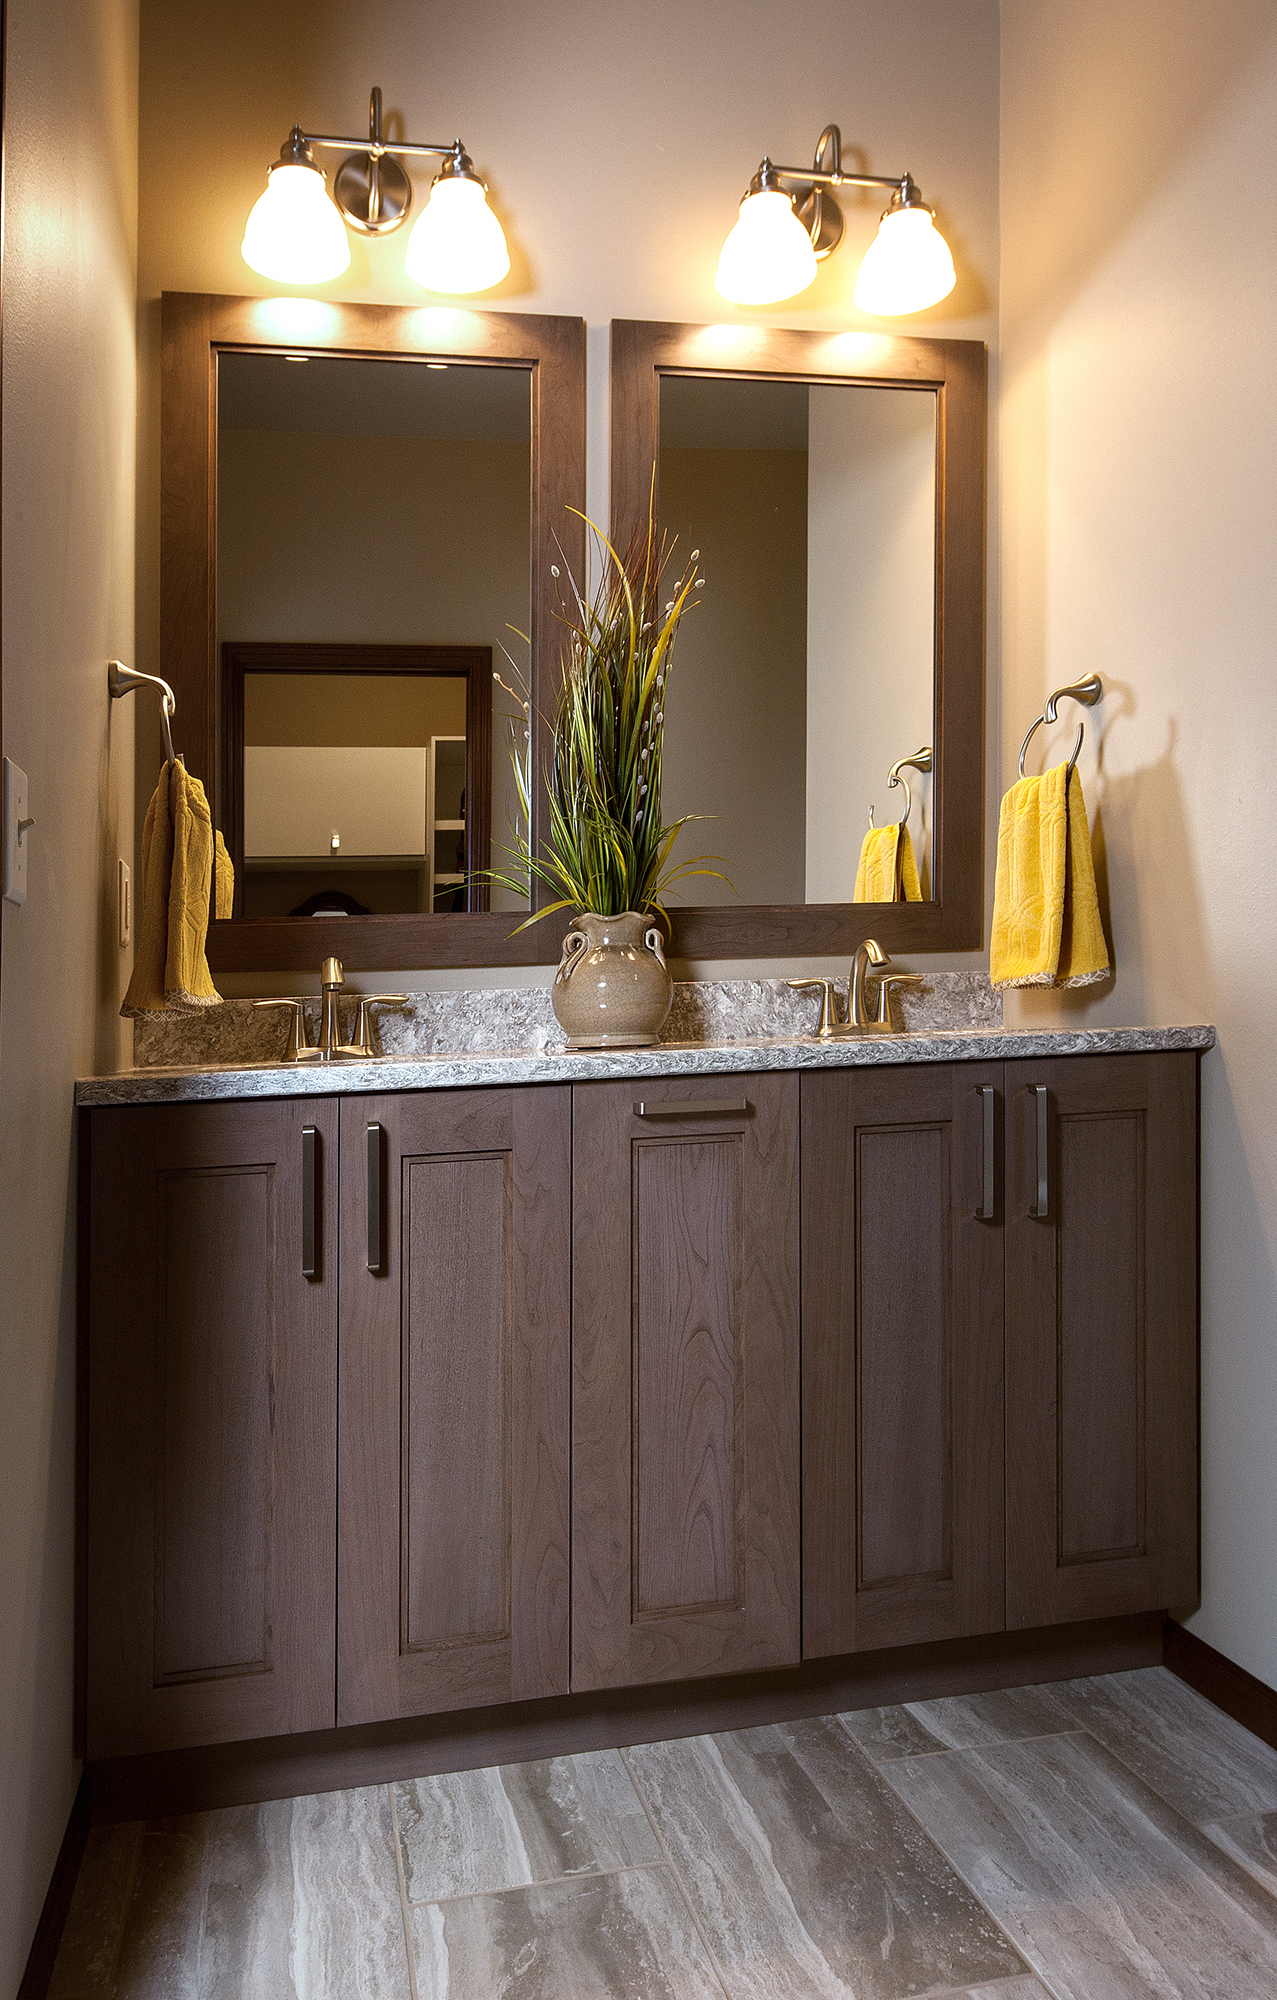 Stained Bathroom Cabinets in Rockport by ShowplaceEVO